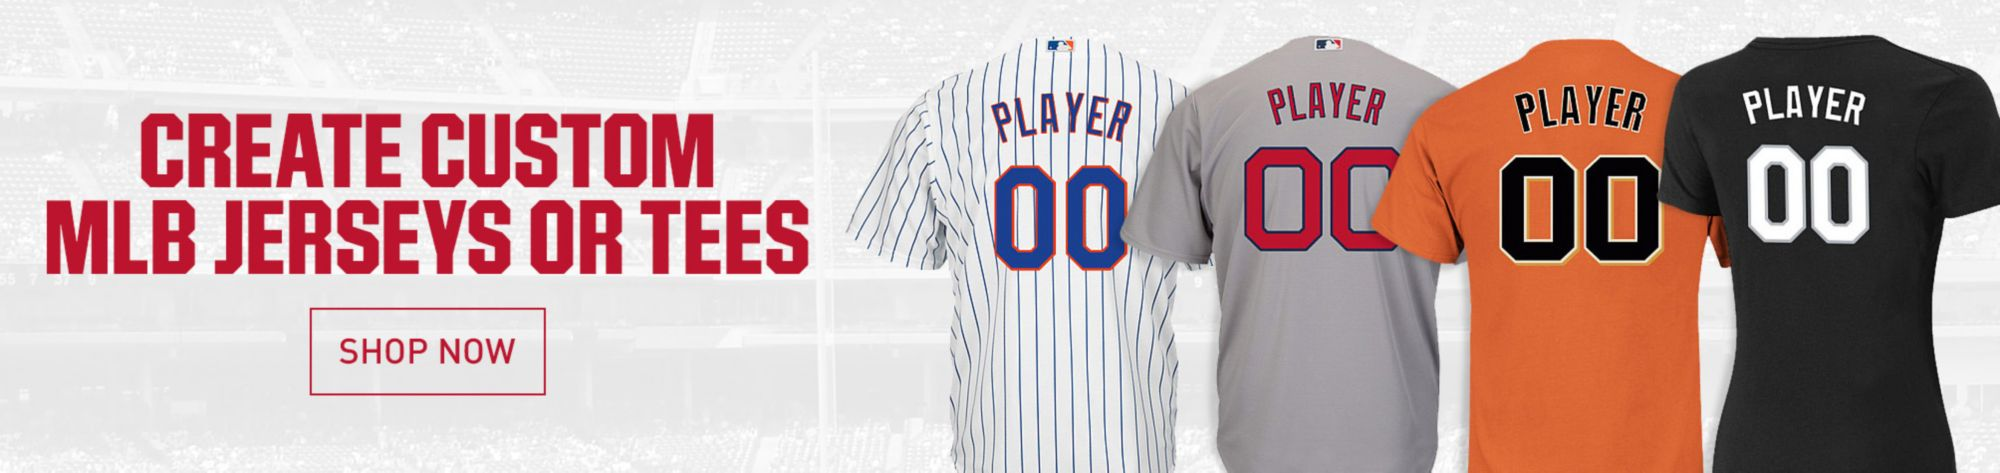 Create Custom MLB Jerseys or Tees